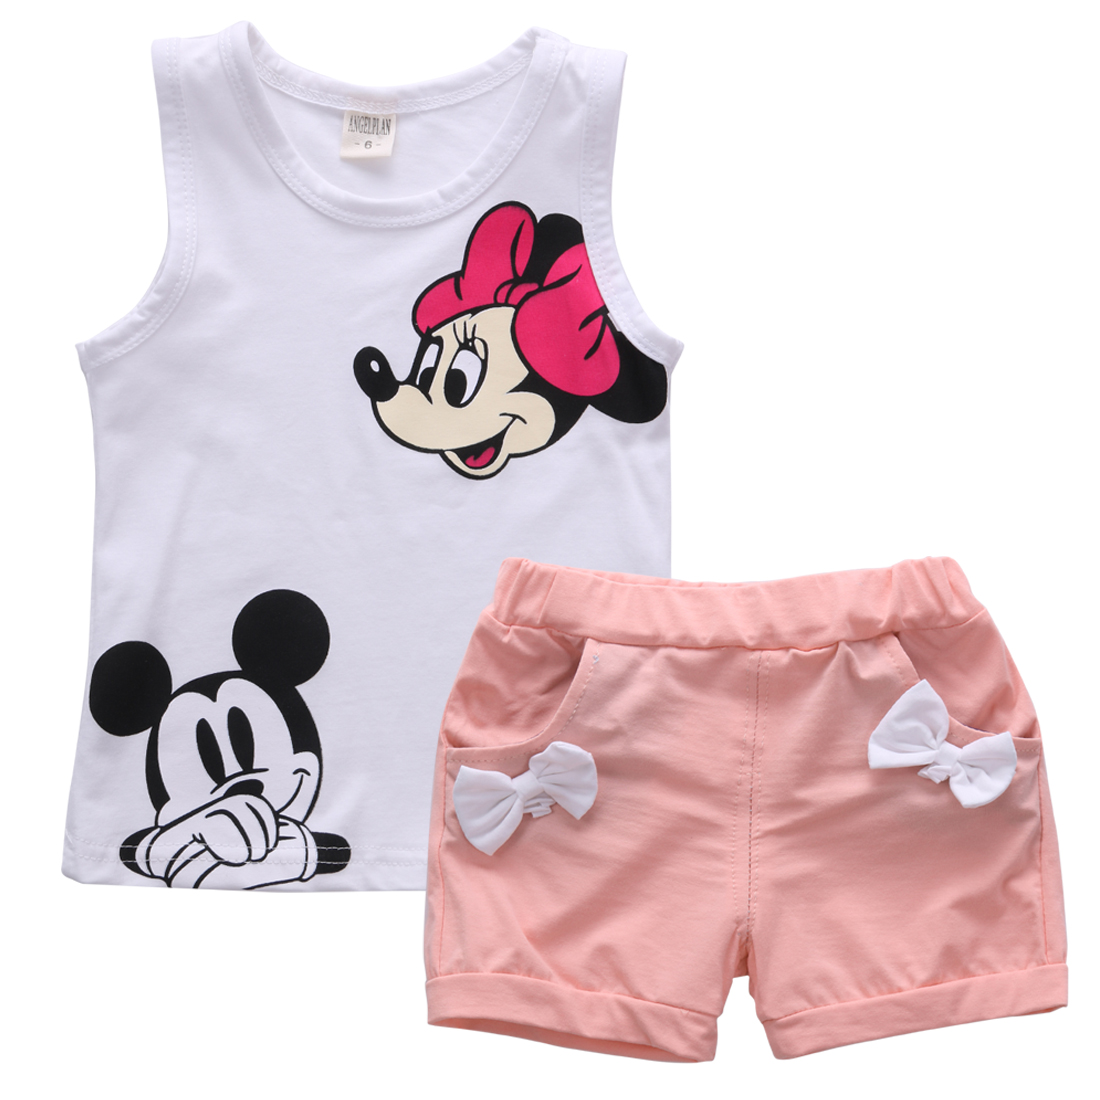 Bestow Kids Baby Girls Striped T-shirt Tops+Shorts Pants Set Outfit Clothes Girl Short /& Top Sets Sets